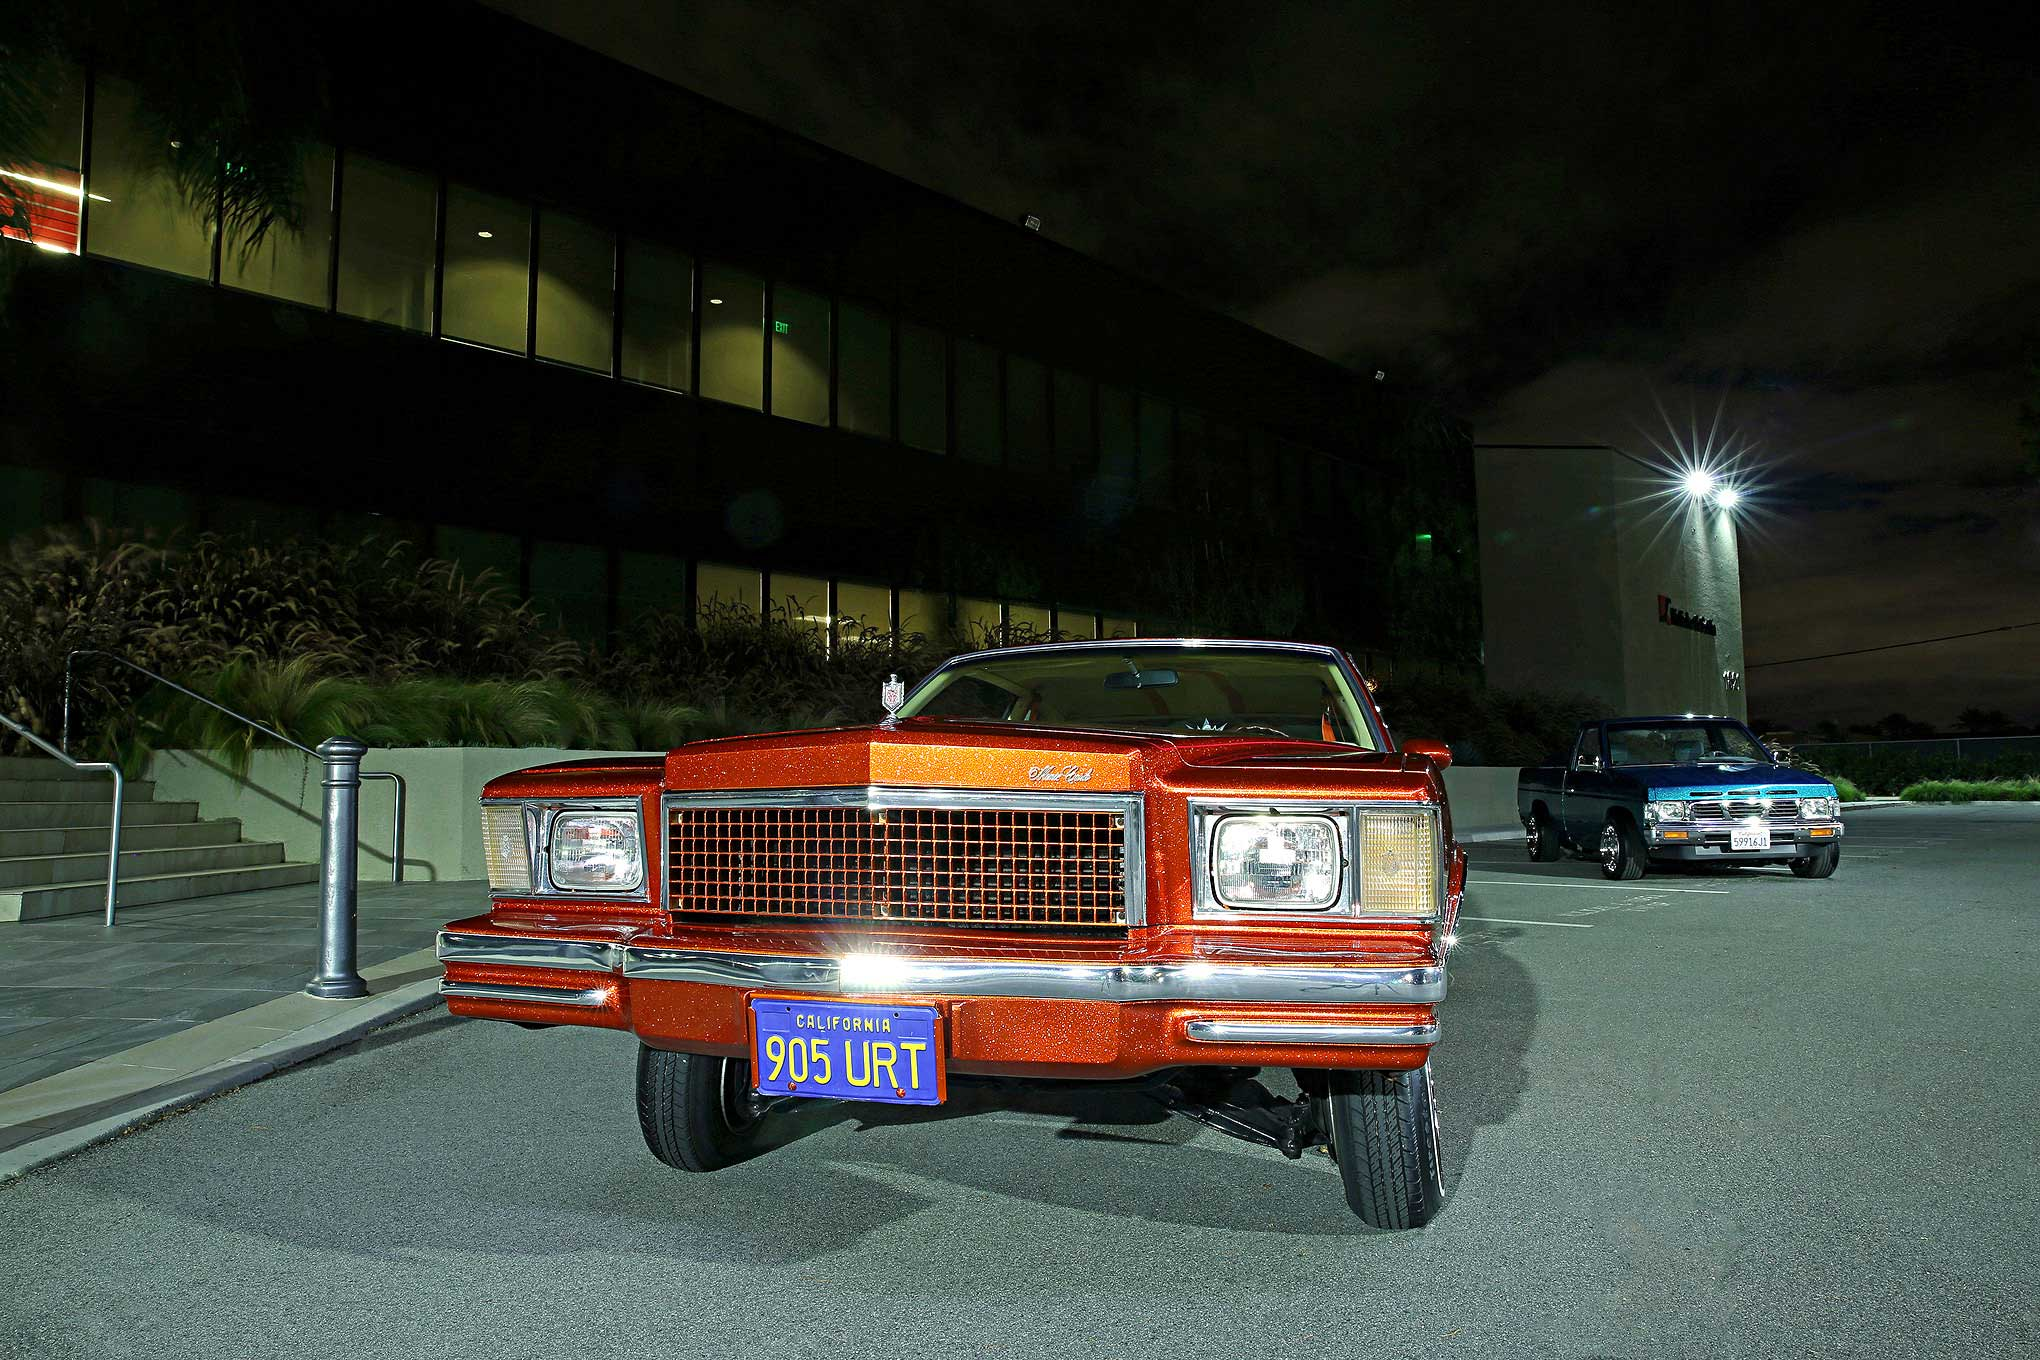 Jesse Carbajal's 1978 Chevy Monte Carlo - A Sunset Dream